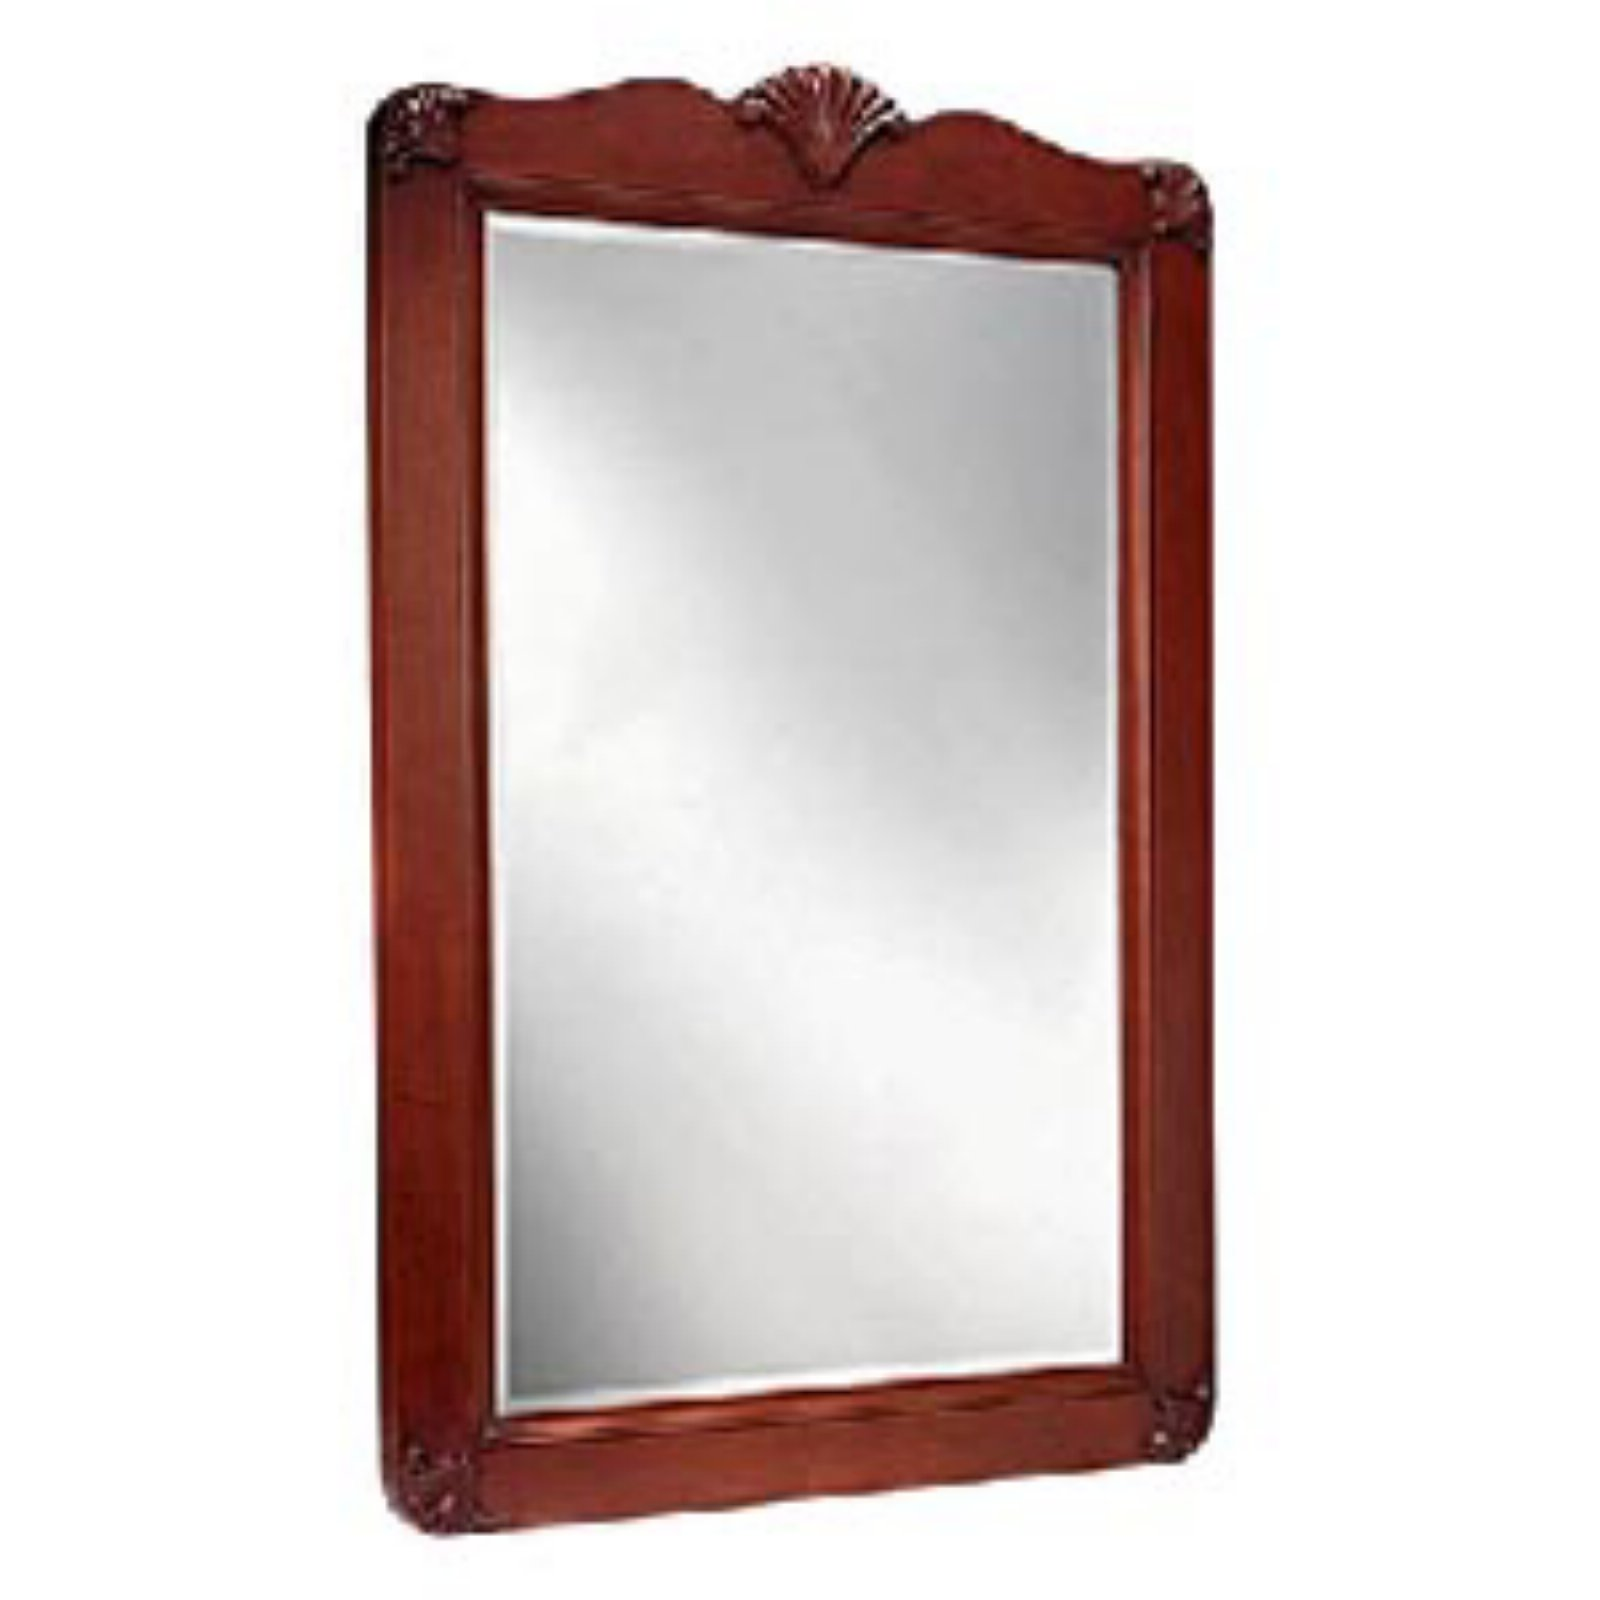 Kensington Cinnamon Vanity Mirror - 24W x 36H in.